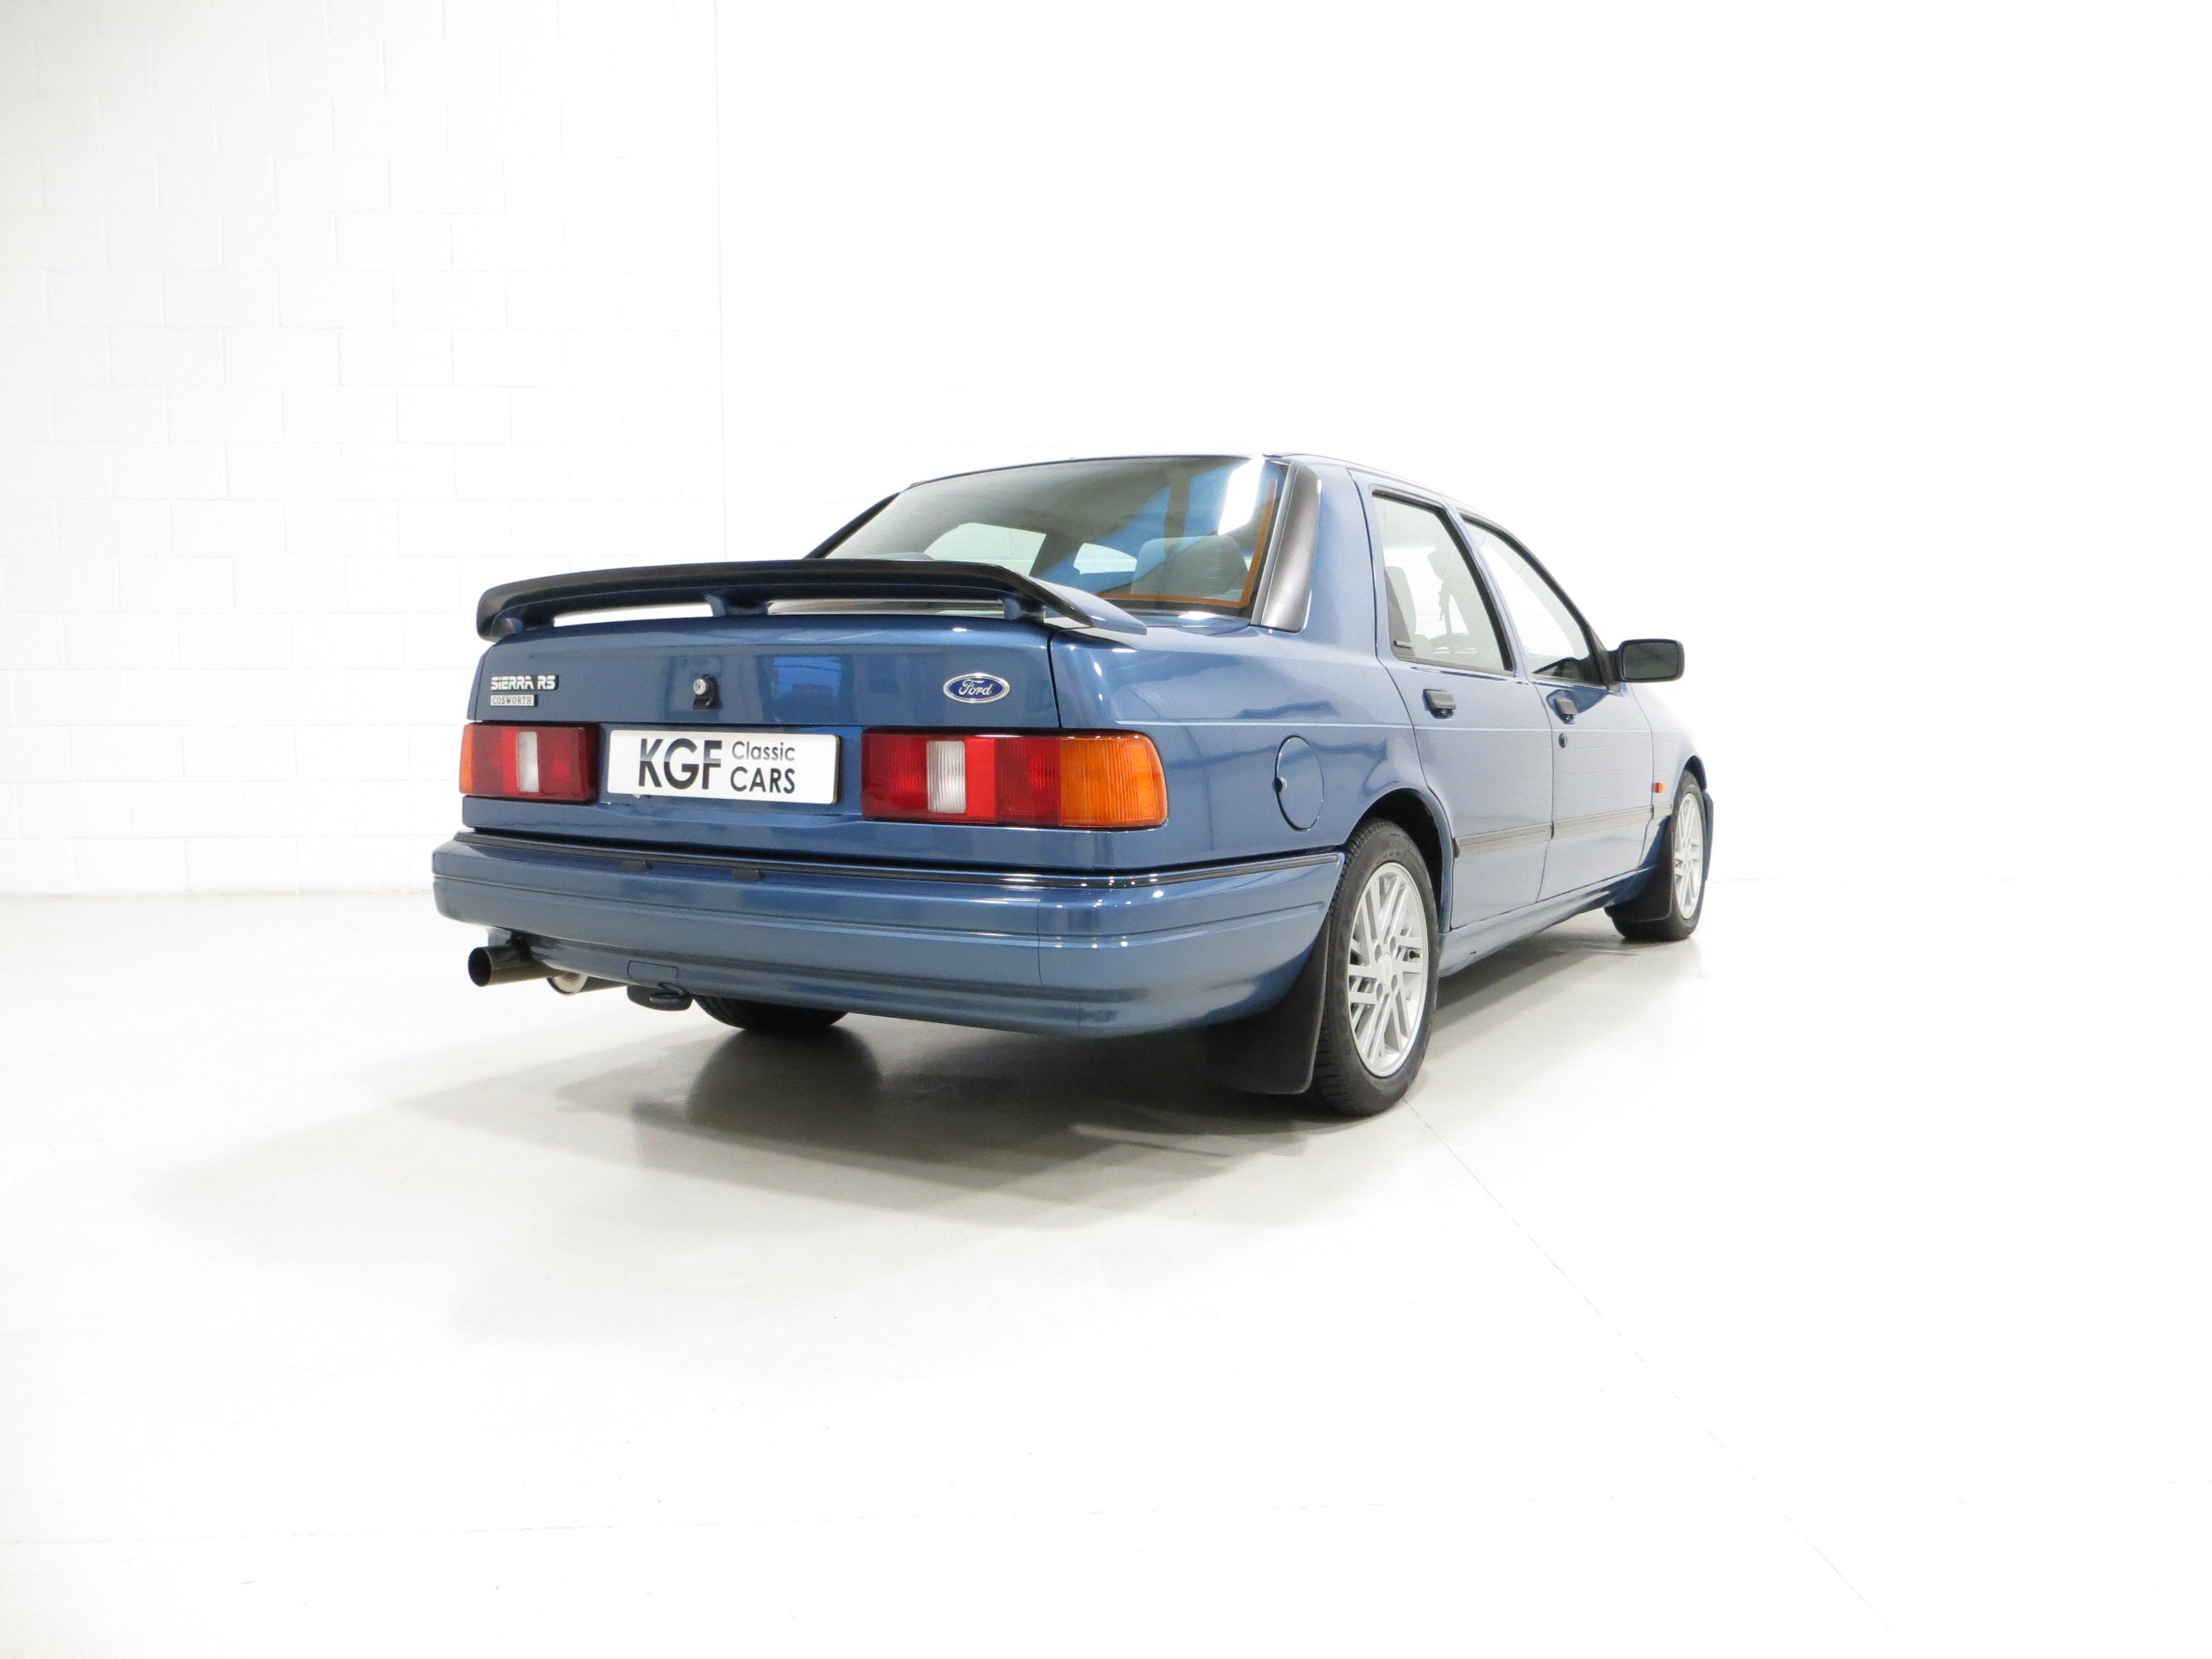 1988 Ford Sierra Sapphire RS Cosworth by KGF Classic Cars, on Flickr